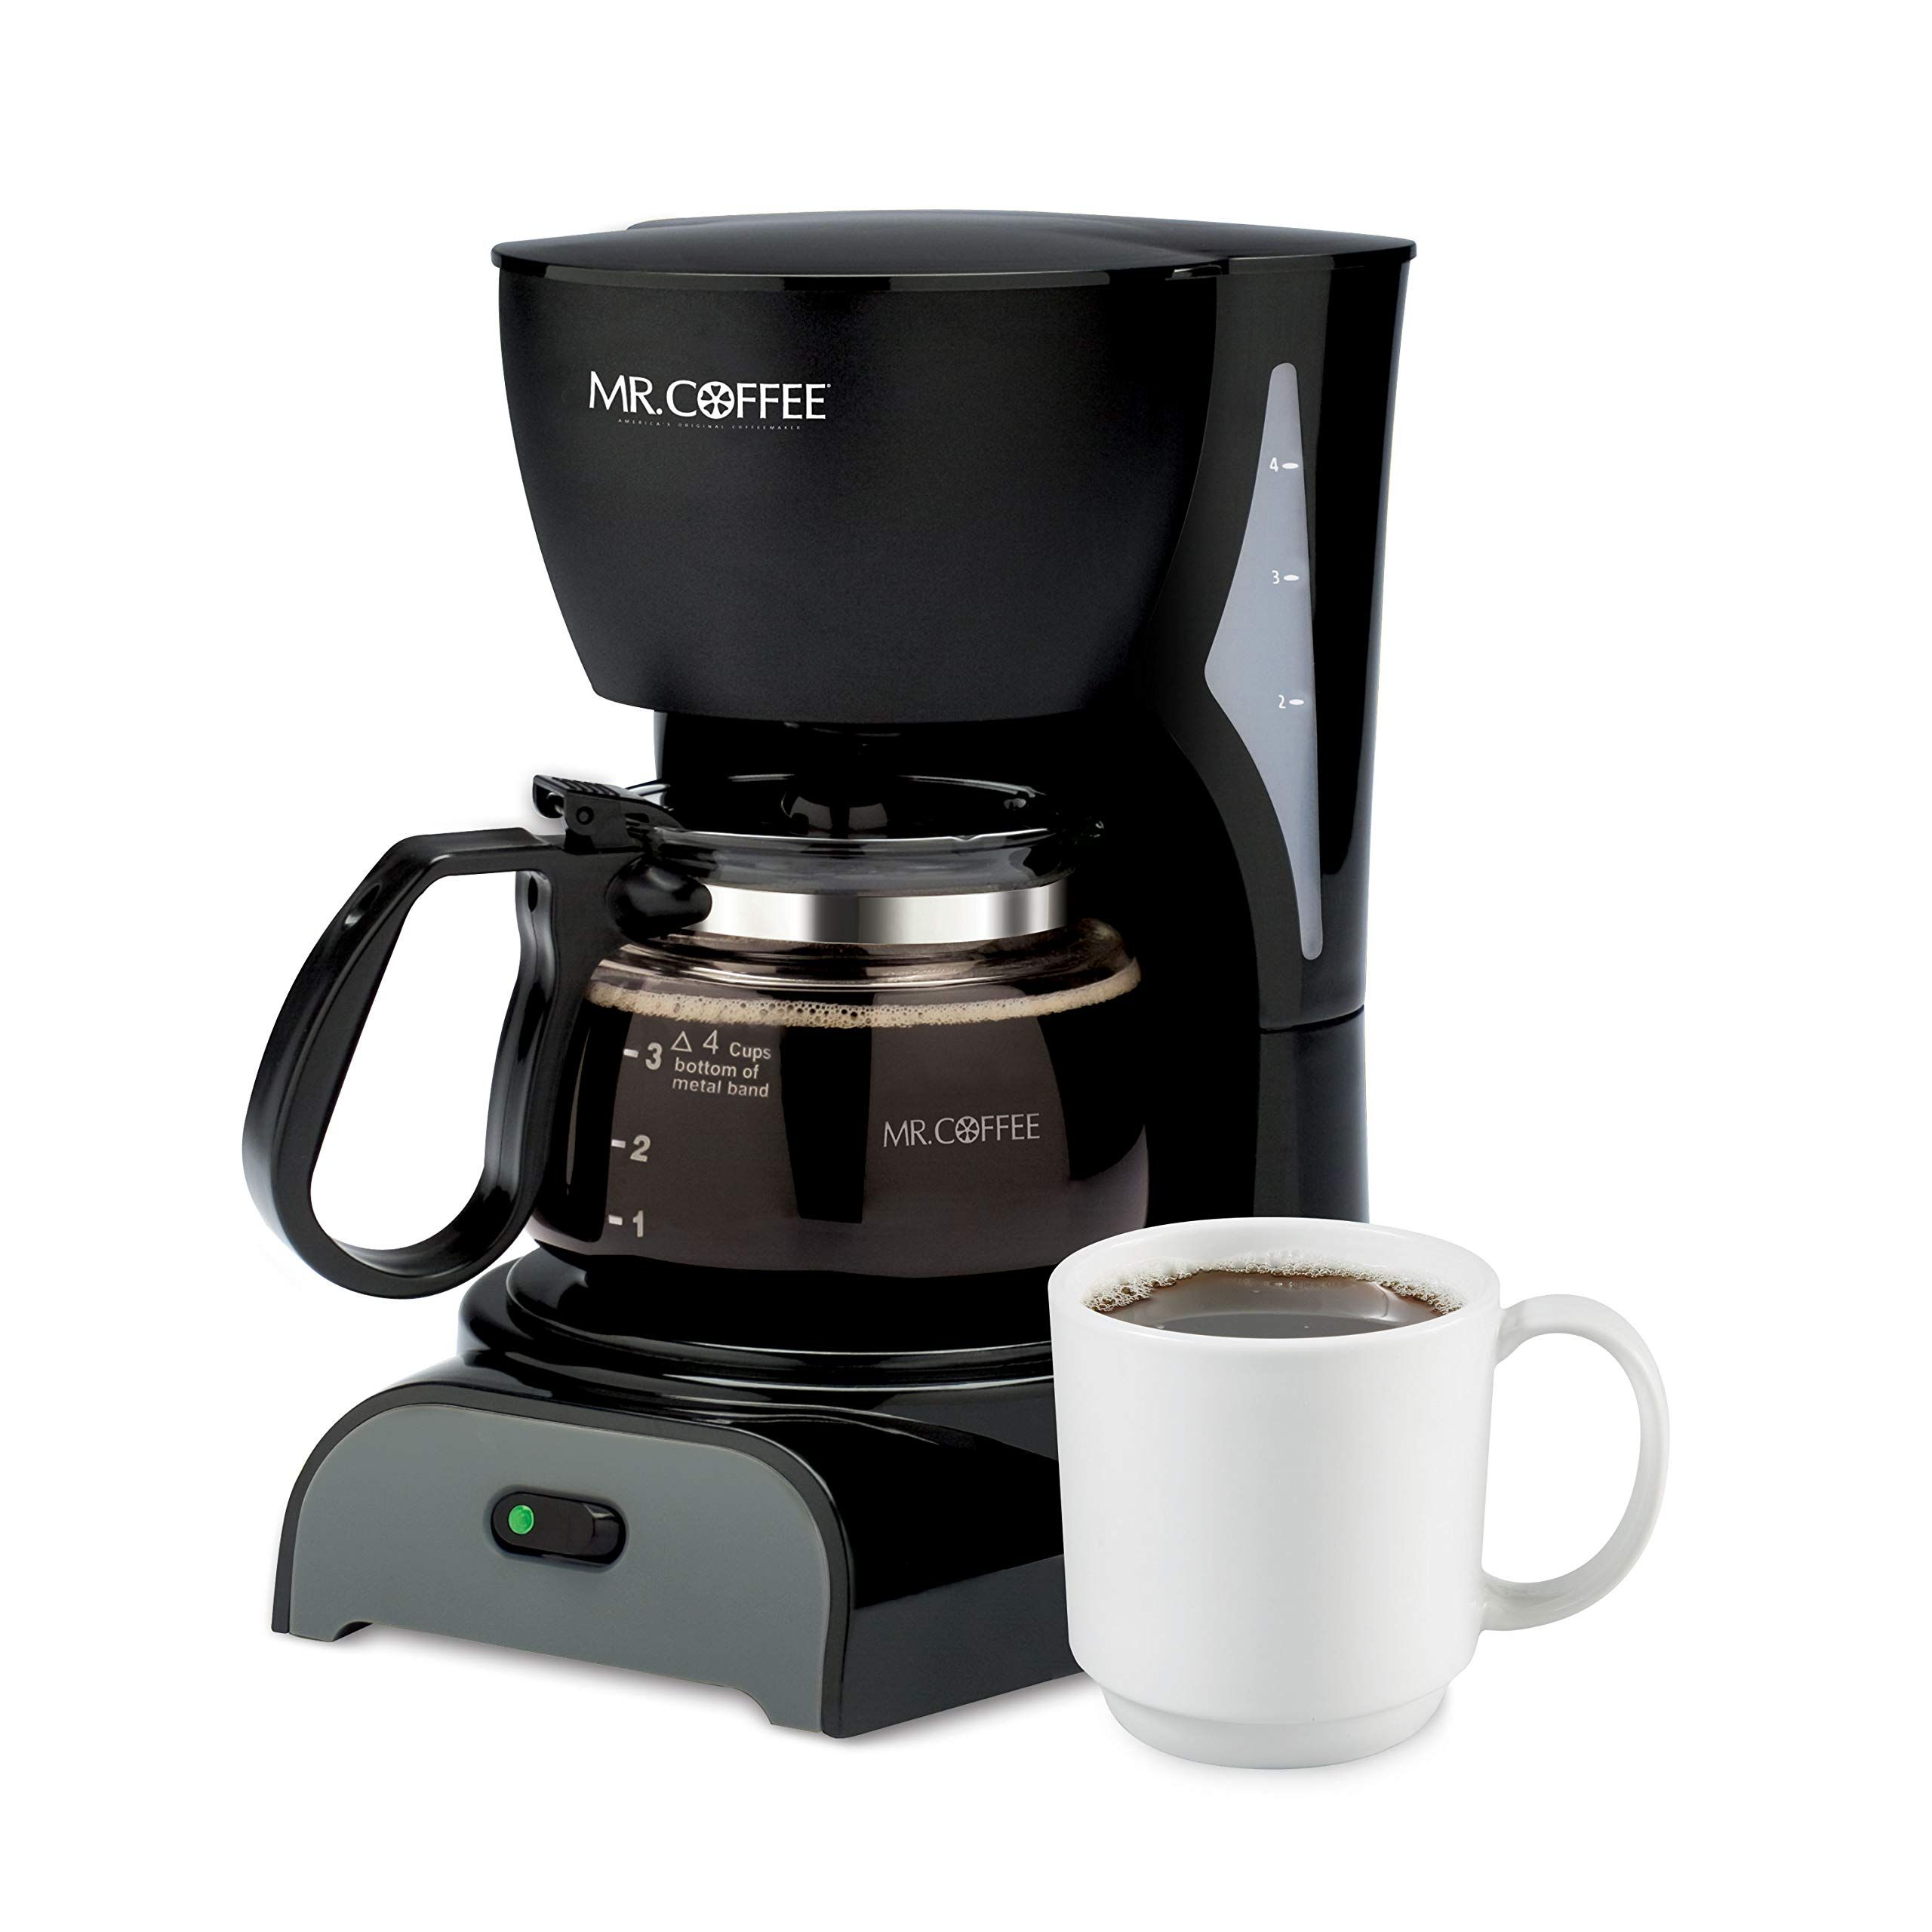 Mr. Coffee Simple Brew Coffee Maker4 Cup Coffee Machine